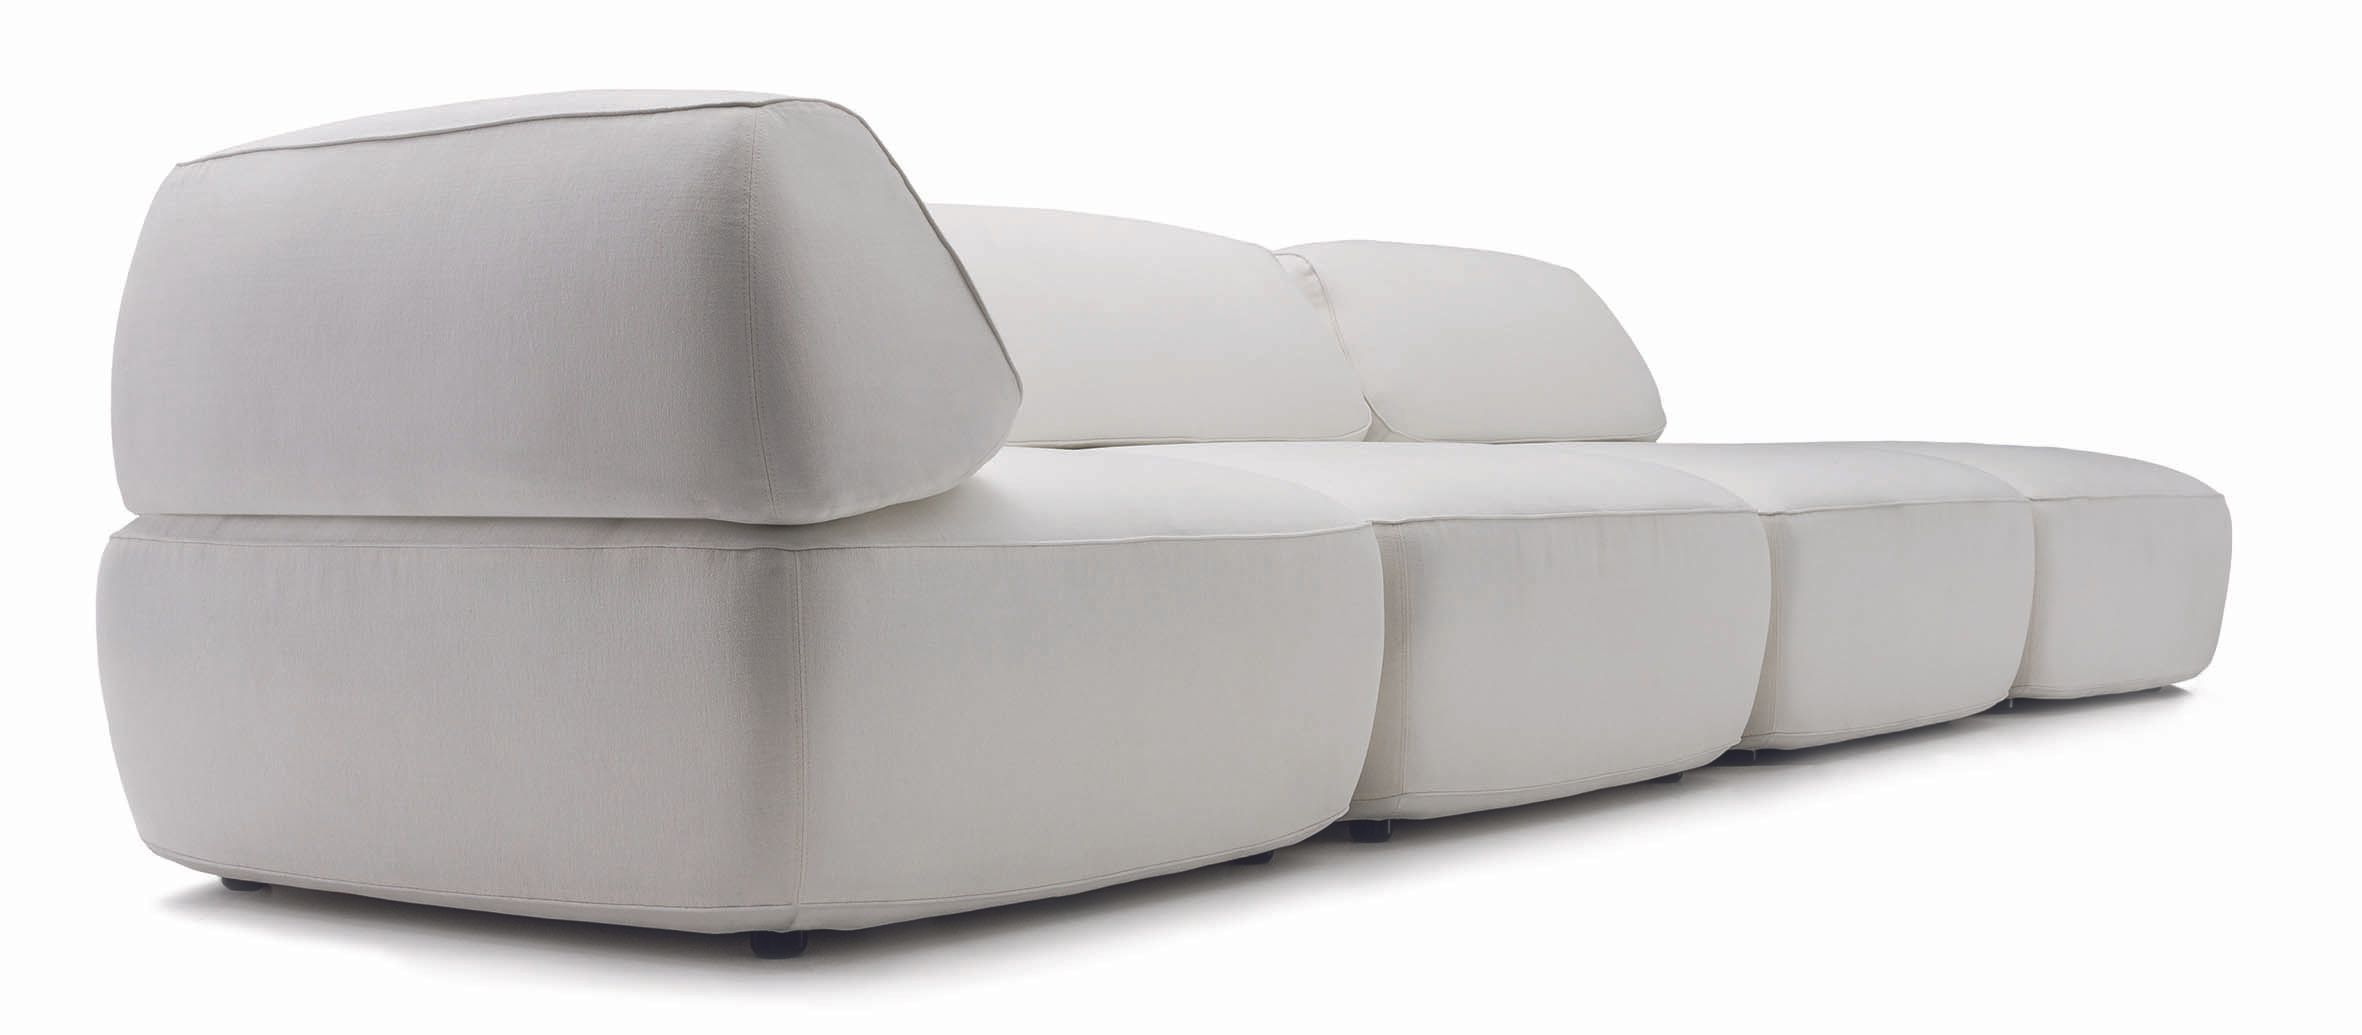 FAT TONY Project type: Sofa System, Couch, Armchair, Chaise Longue     Time:  2012-2013     Status: Available     Client: IP Design     Info: http://www.ipdesign.de     Photos: ipdesign   Furniture endlessly variable in use, in covers, in formation…     Fat Tony is a modular seating system whose 'kit of parts' allows a huge spectrum of variation possibilities. Designed by the architecture brand GRAFT, Fat Tony is endlessly flexible in use with its three cubic modules. Bachelor pad or loft, living room or hotel lobby – Fat Tony is at home anywhere. Its different elements make it uniquely versatile and make it look great in any location.